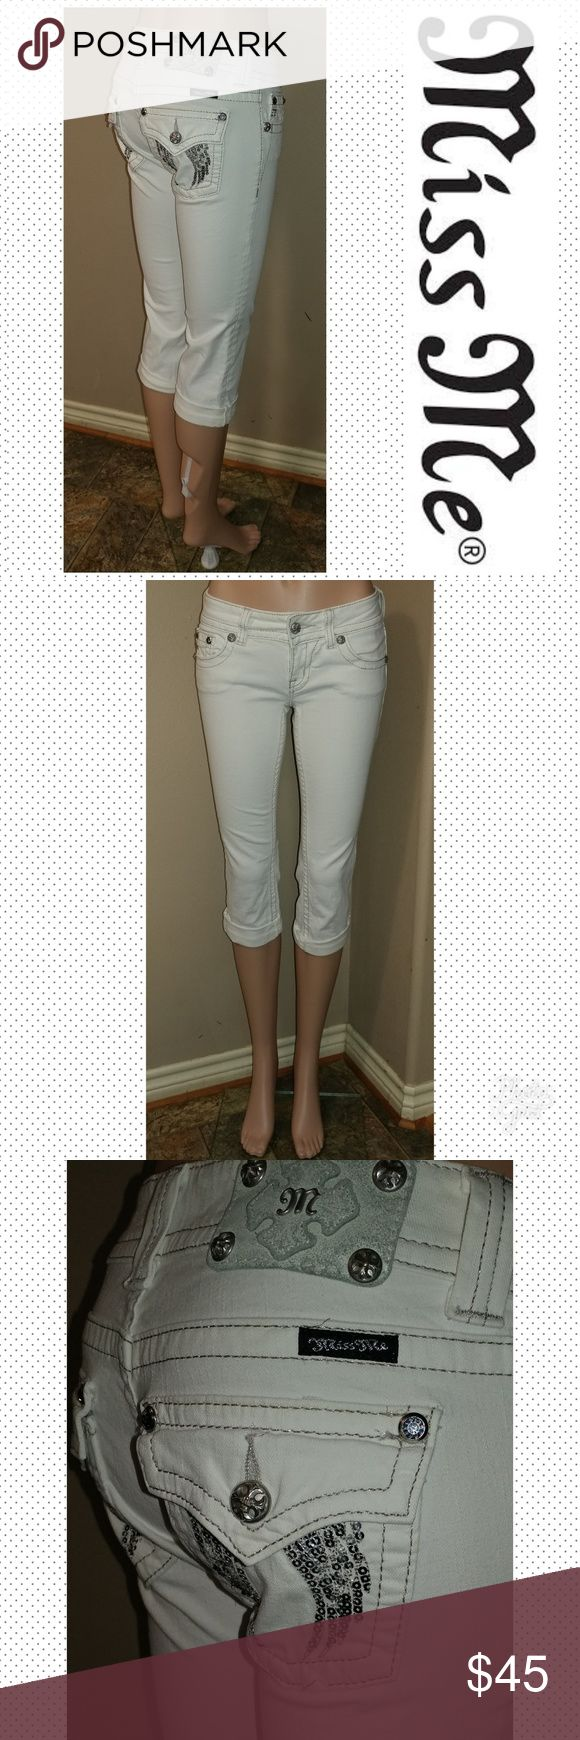 """Miss Me Capri size 26 Miss Me Capri size 26, inseam 20"""", waist laid flat 13.5"""", rise 6.5"""". Sequin wings. Great condition. Miss Me Jeans Ankle & Cropped"""